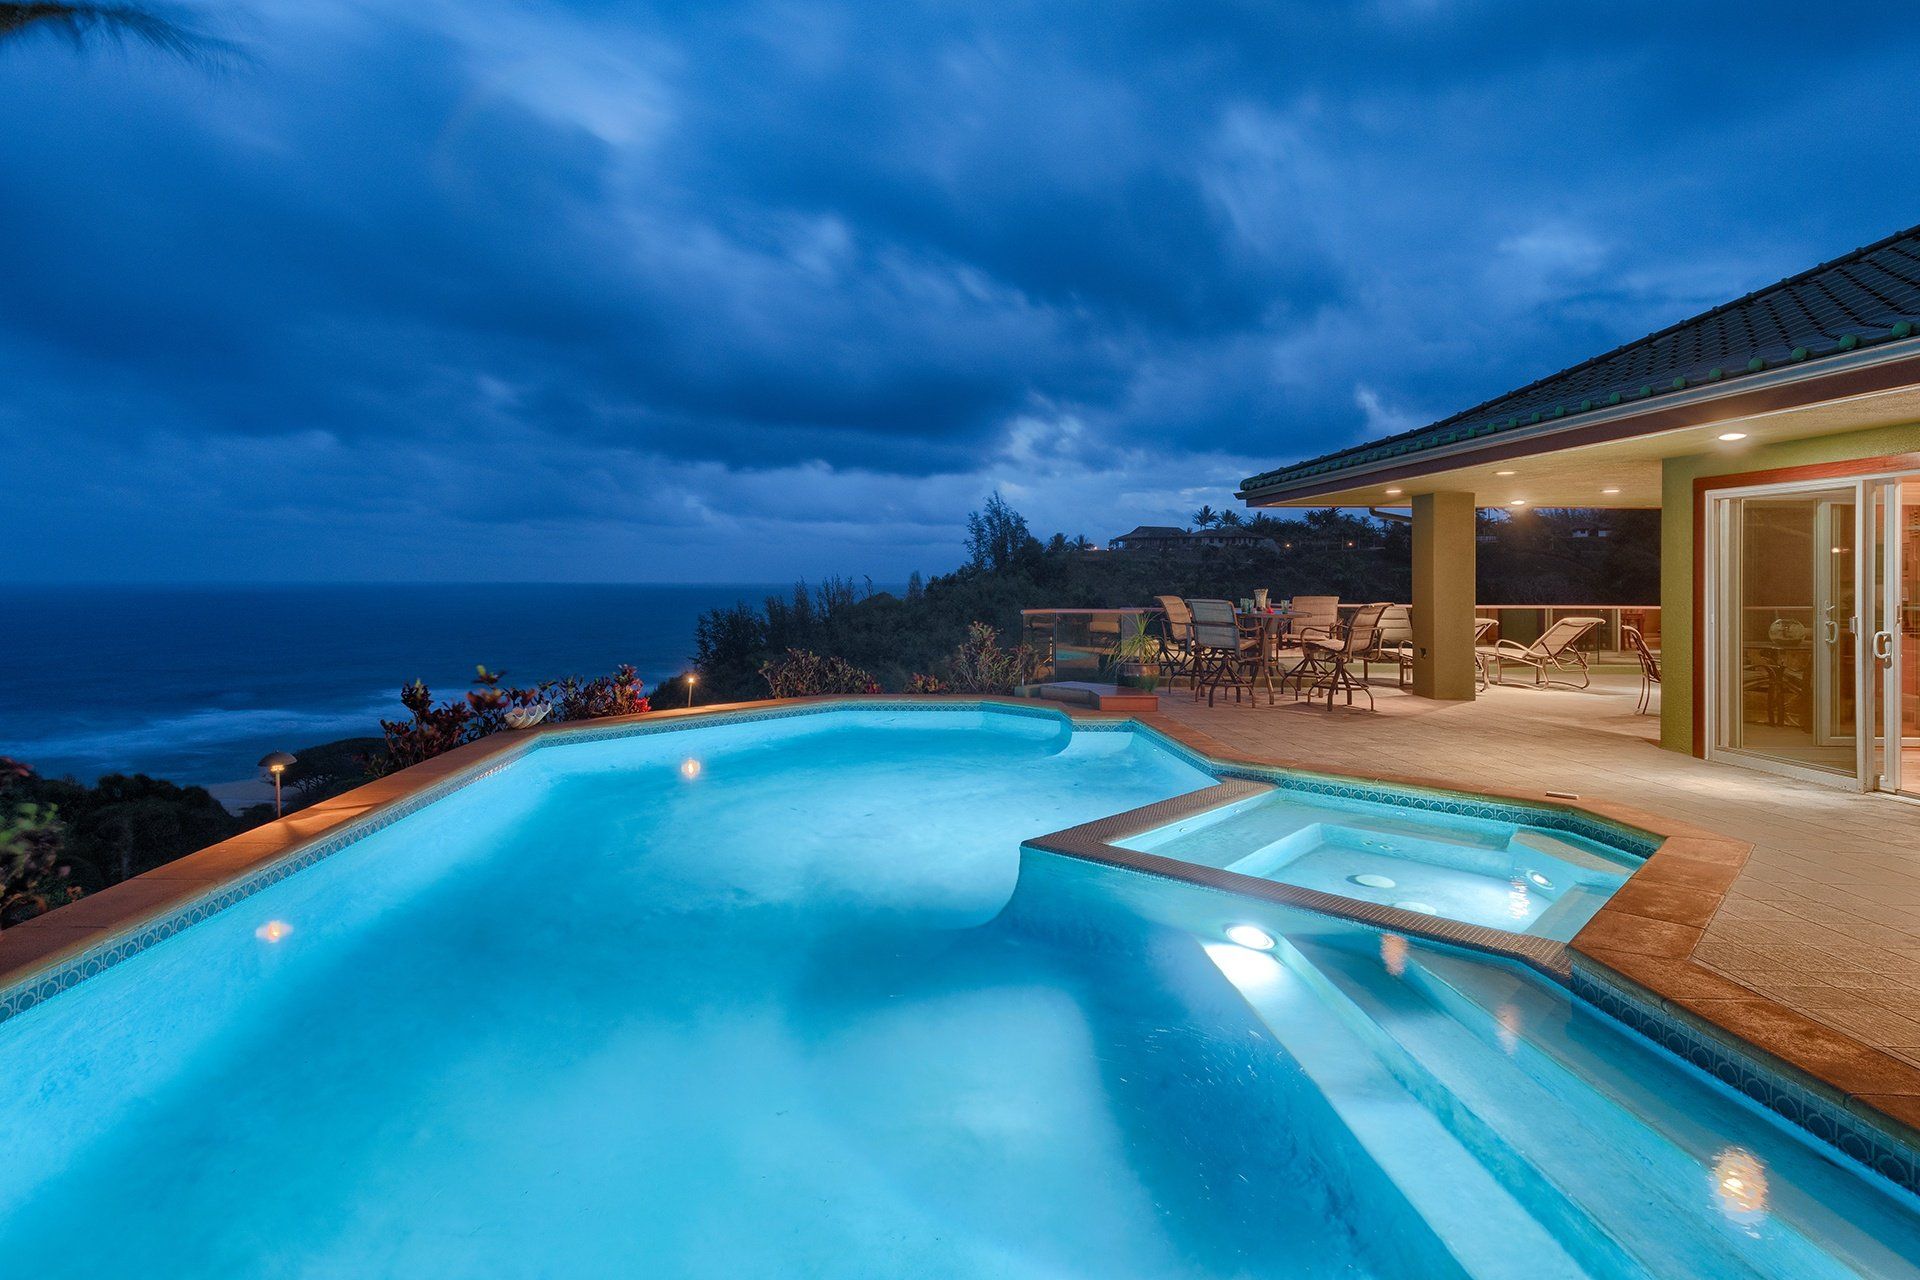 A dazzling swimming pool seems almost cantilevered over the blue Pacific beyond.